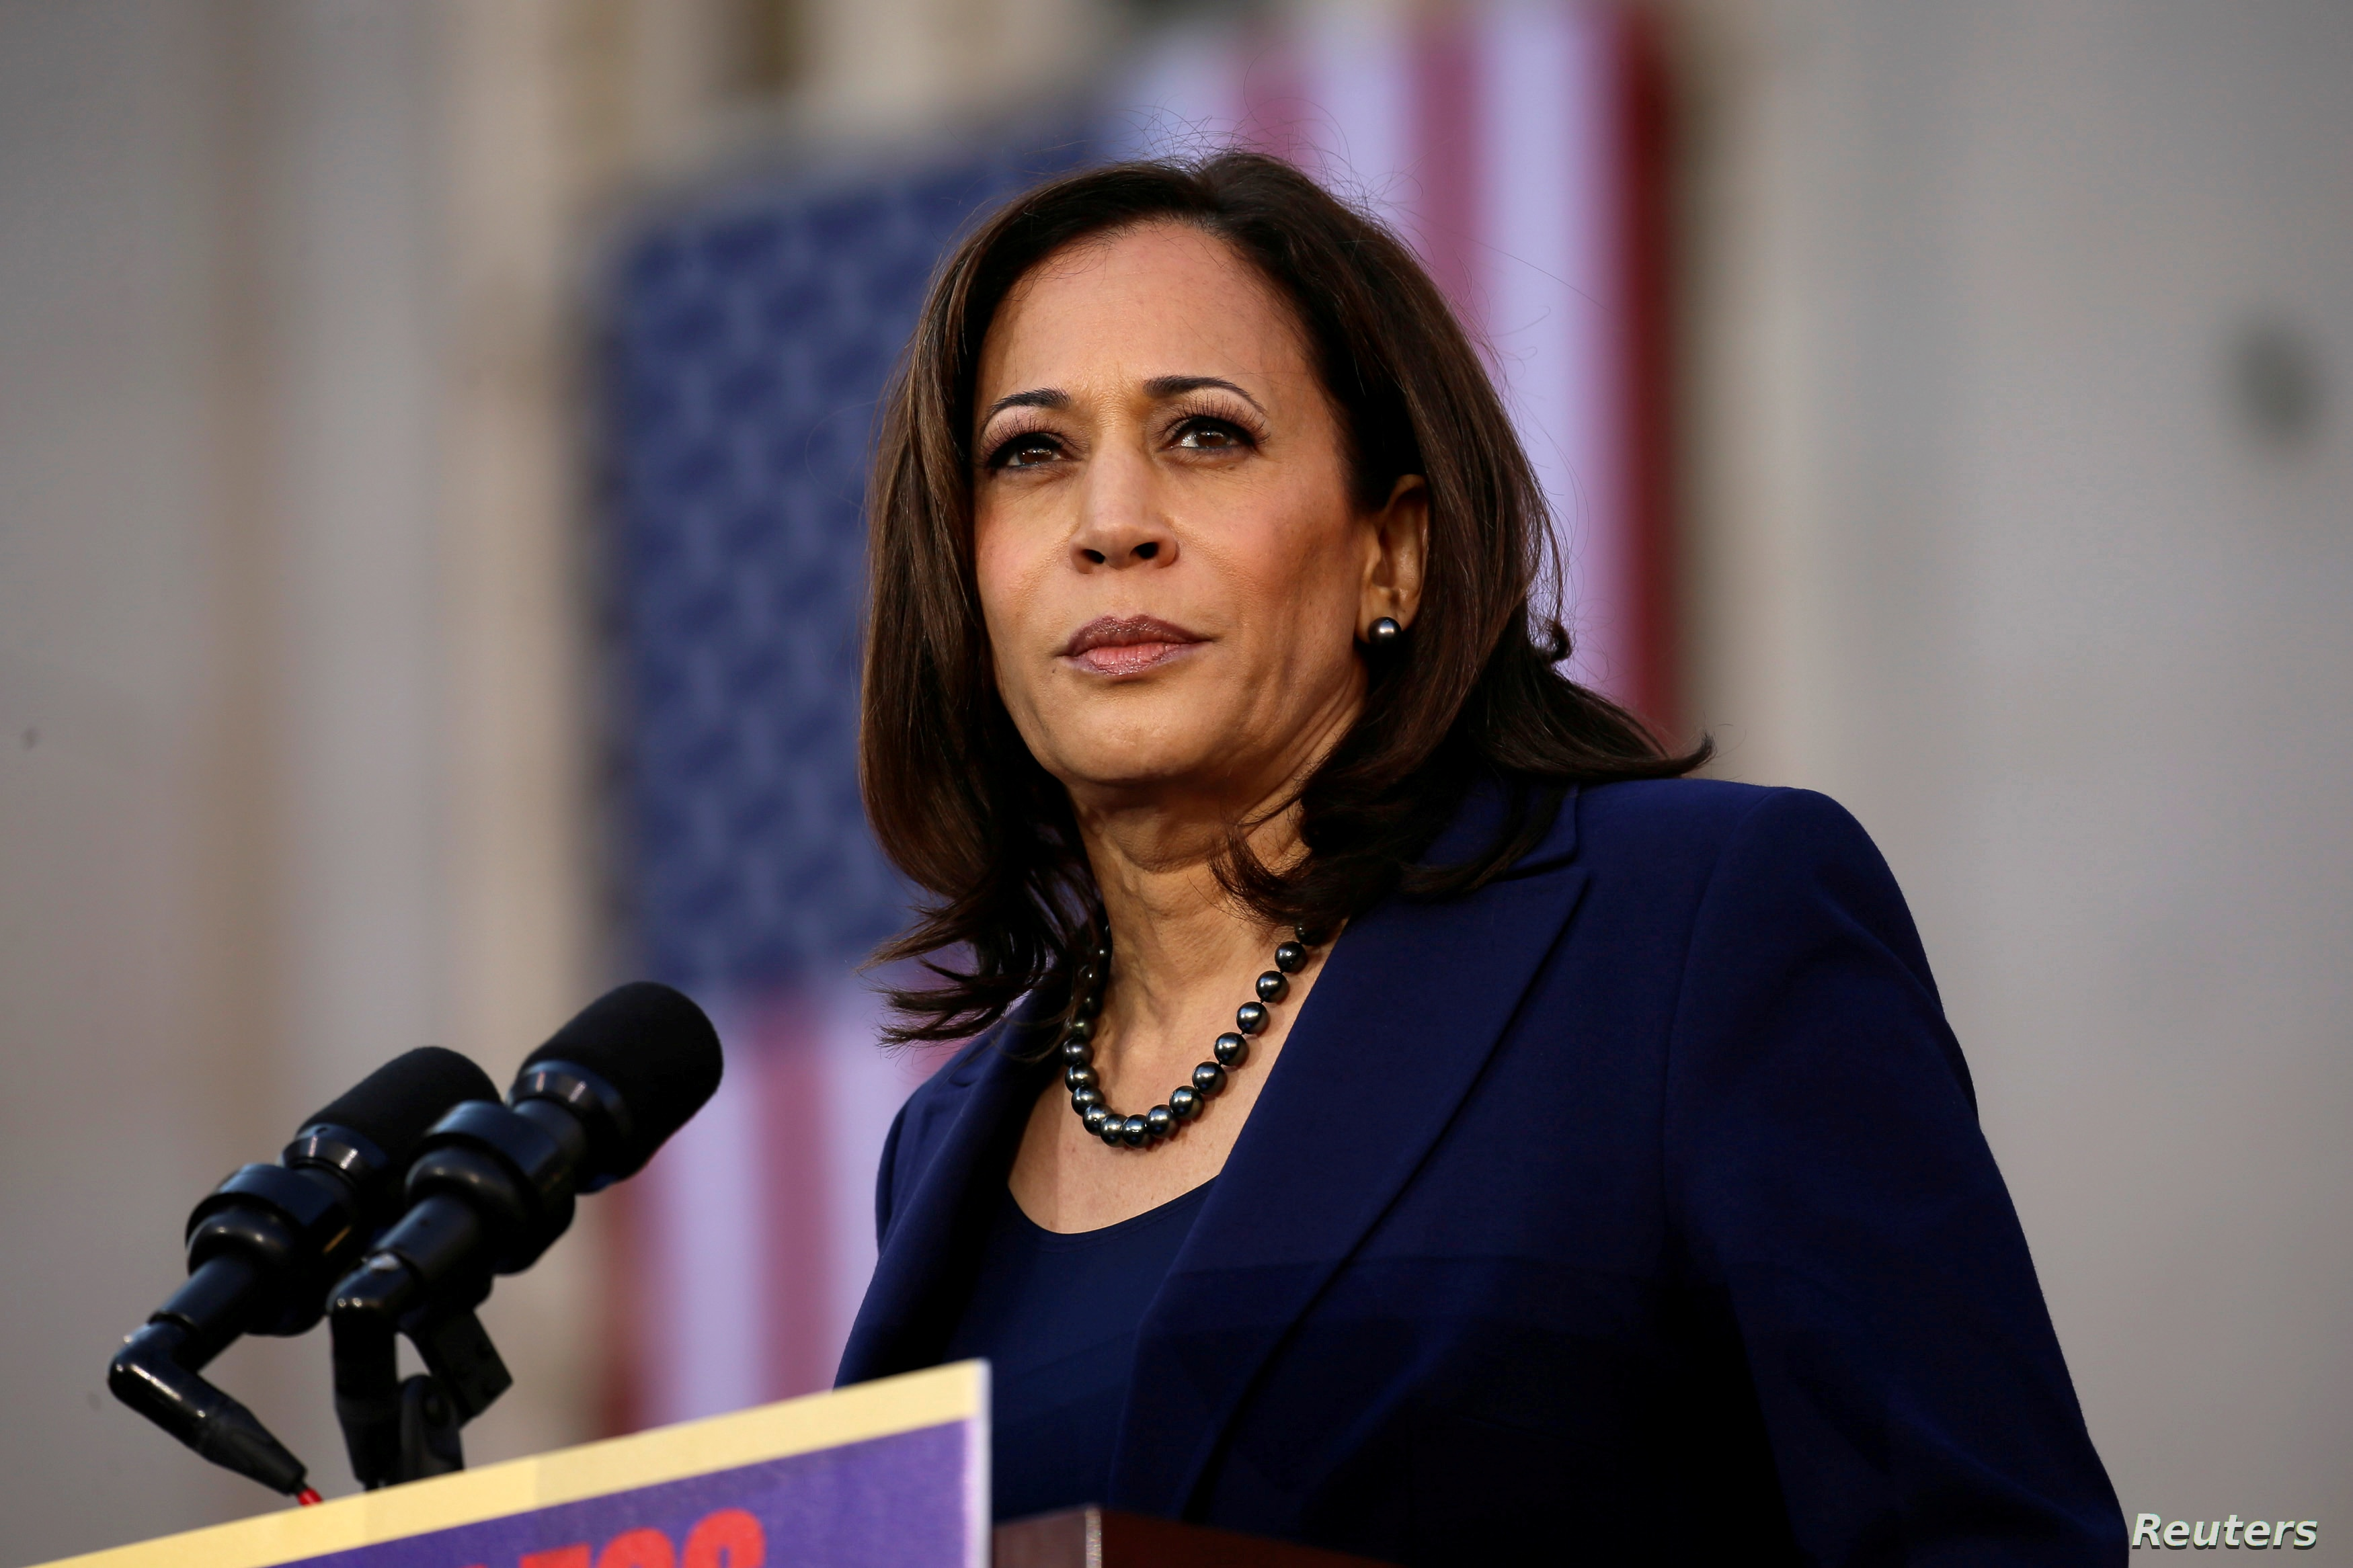 Biden S Pick Of Harris As Running Mate Draws Tears From Some Criticism From Others Voice Of America English